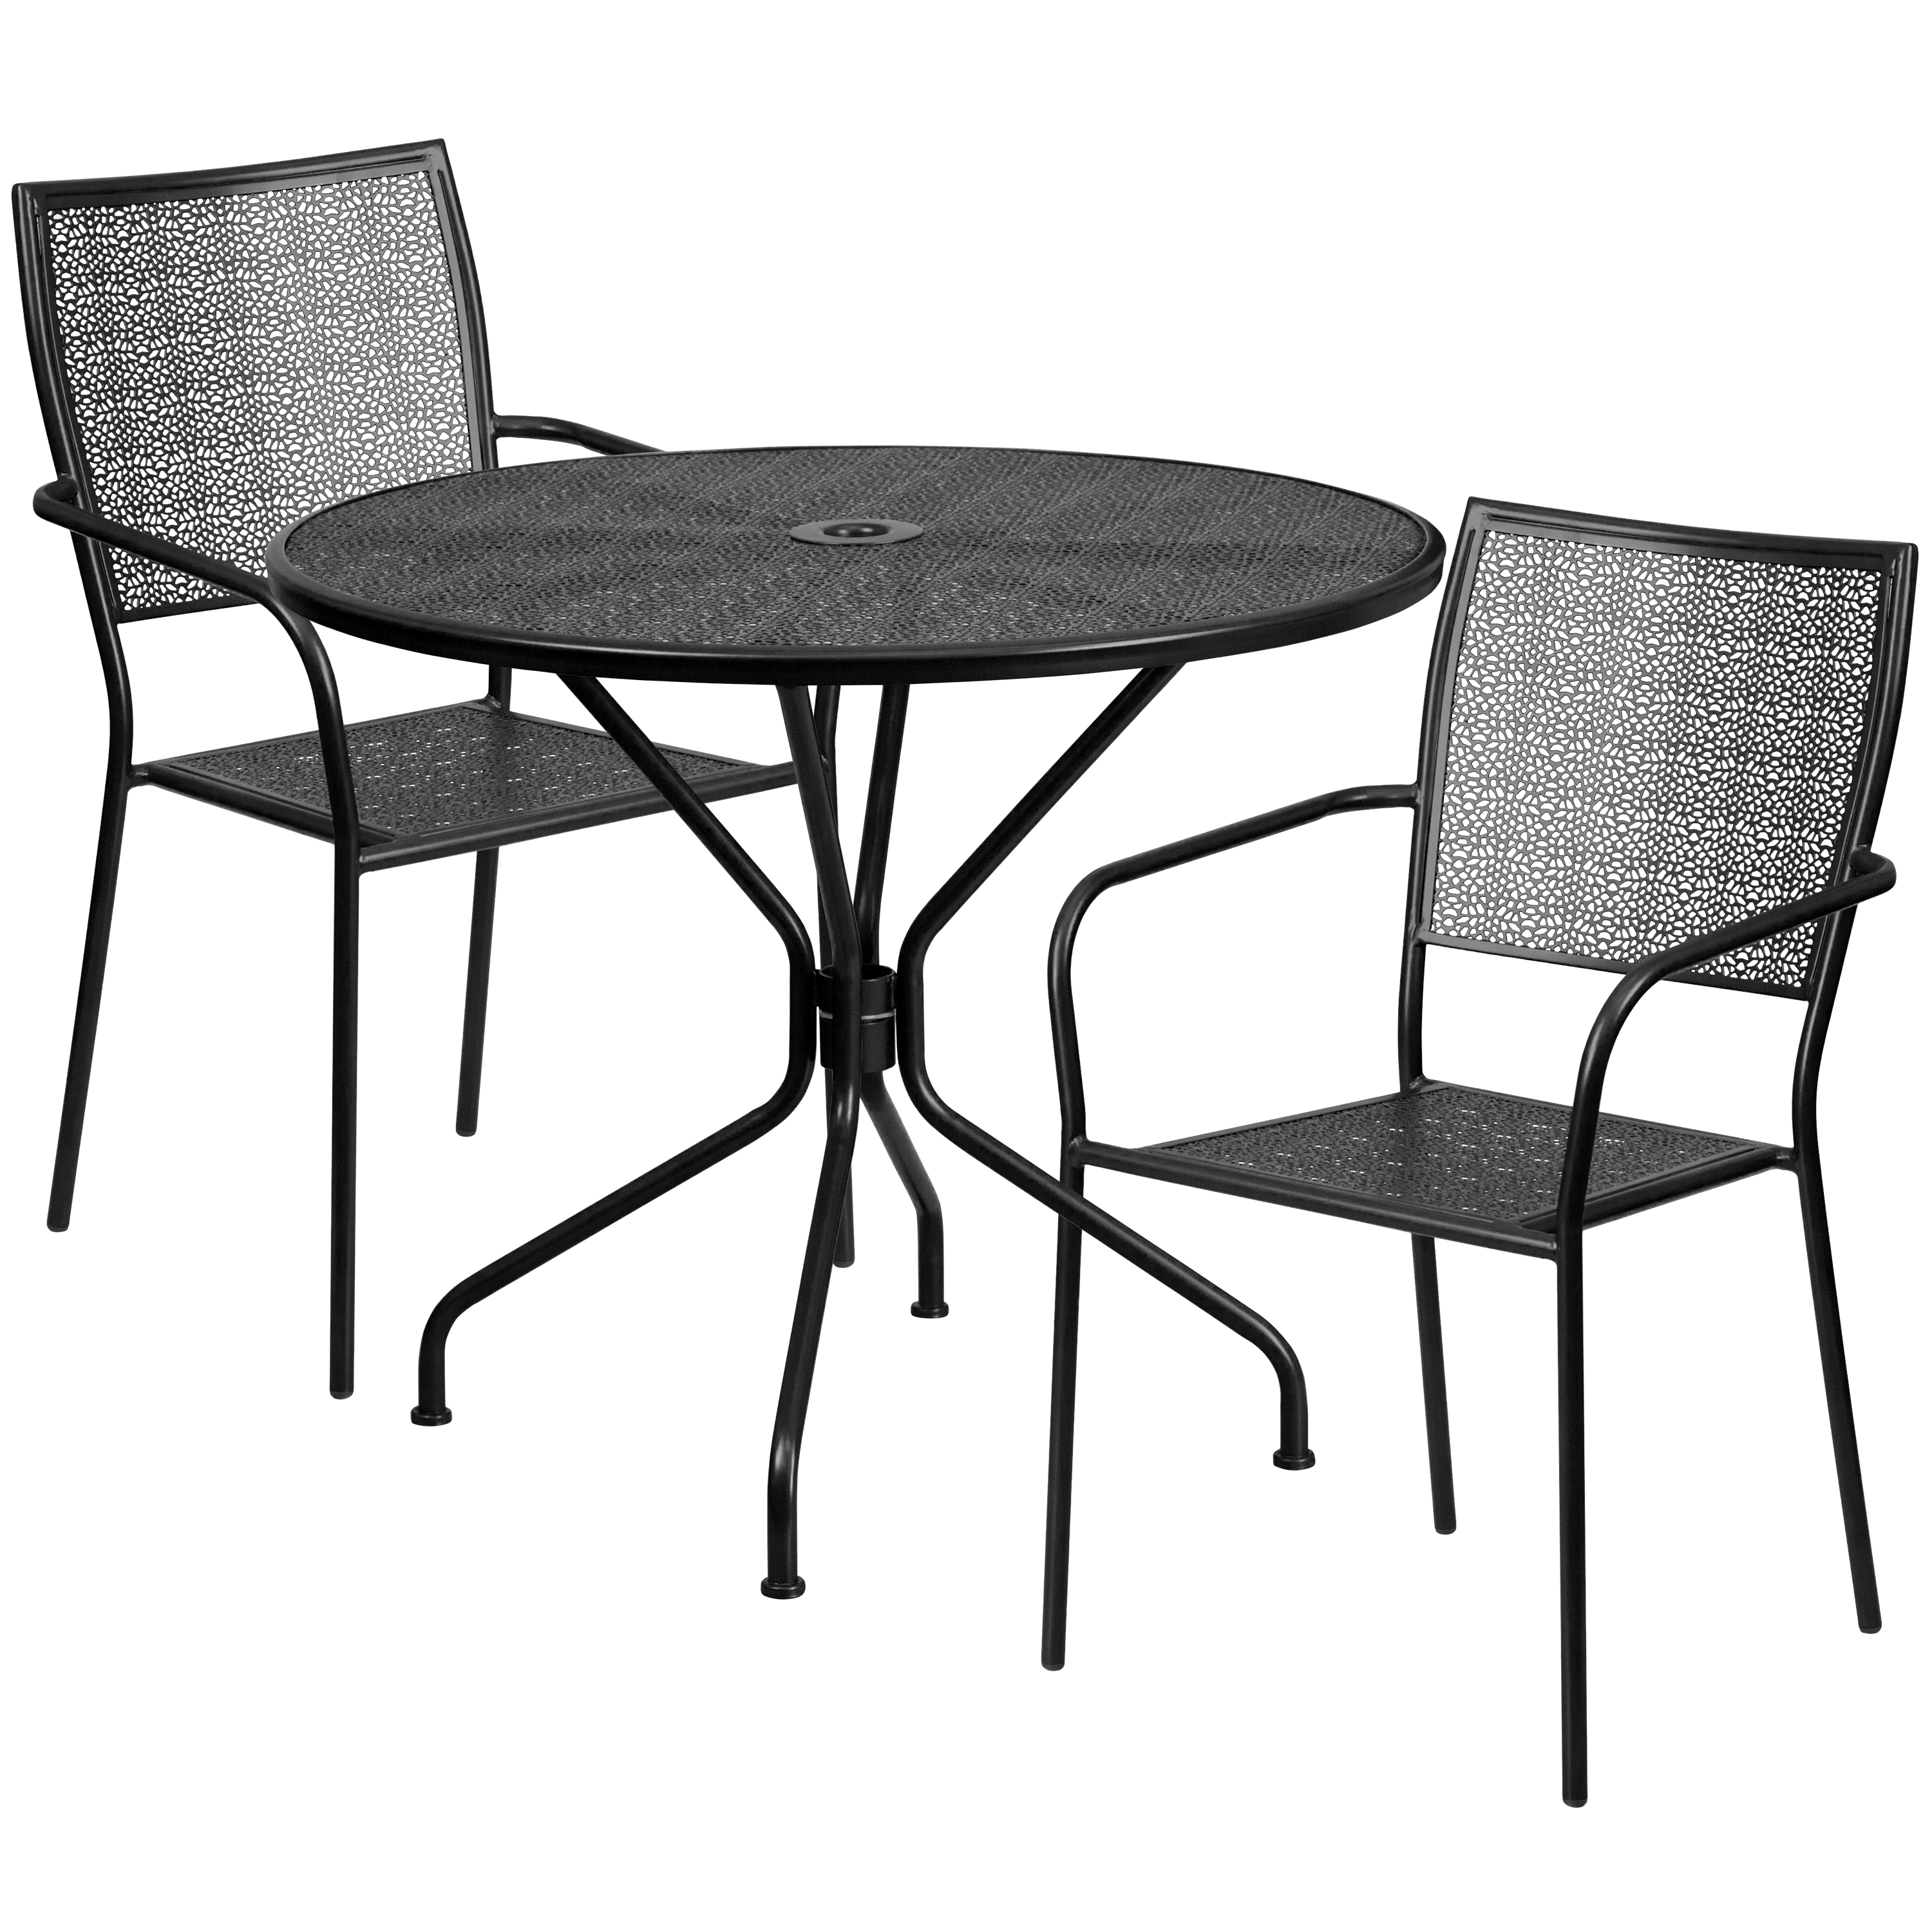 "Flash Furniture 35.25"" Round Indoor-Outdoor Steel Patio Table Set with 2 Square Back Chairs, Multiple Colors"